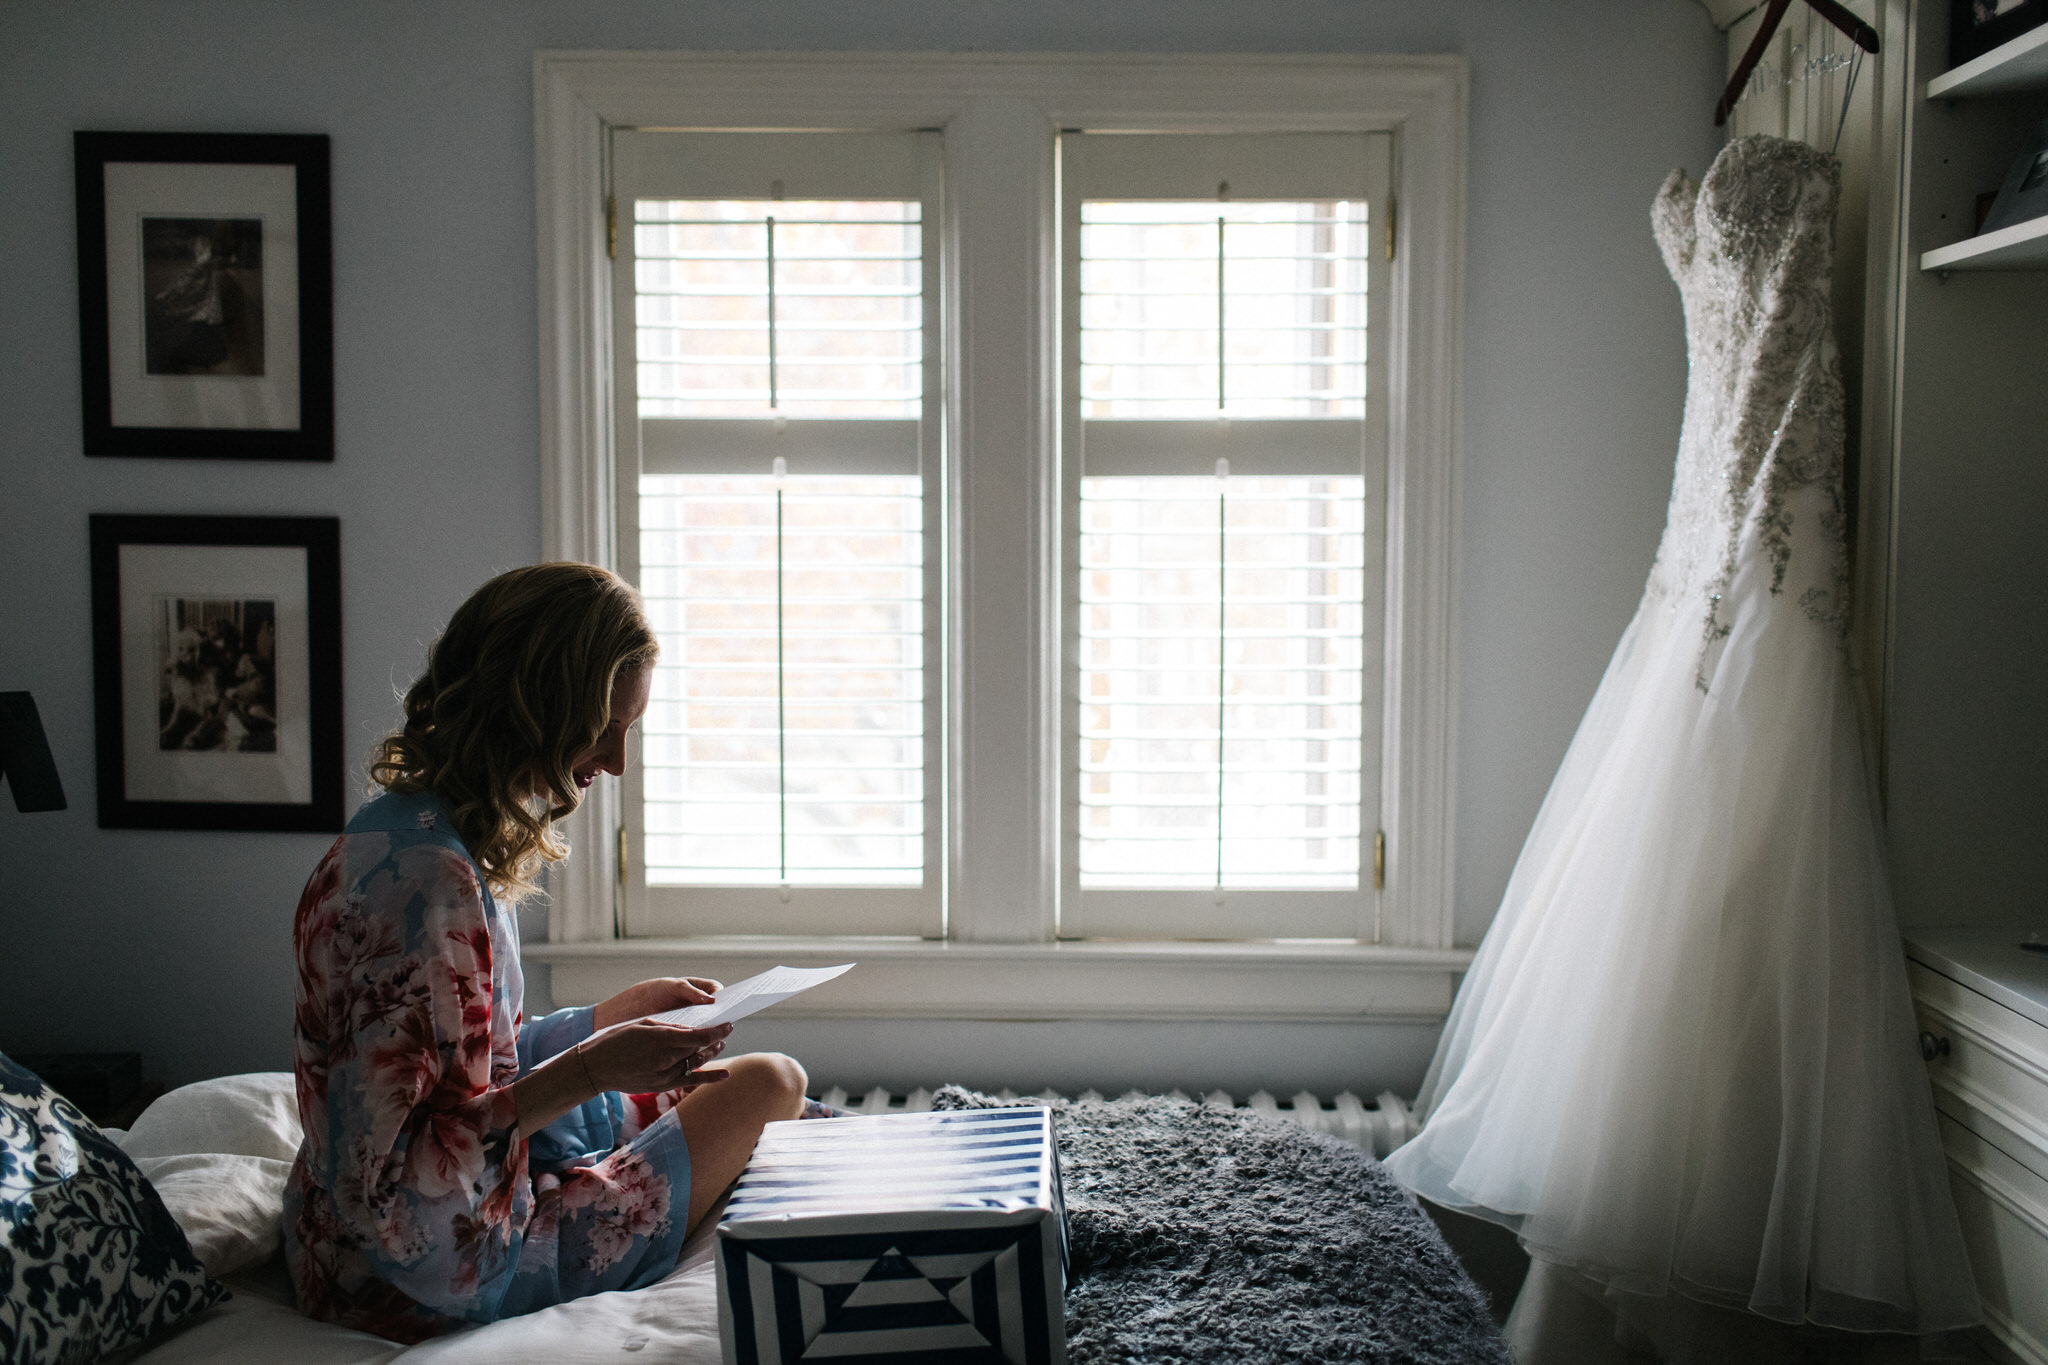 Bride opening gift, wedding day prep photos, toronto wedding photographer